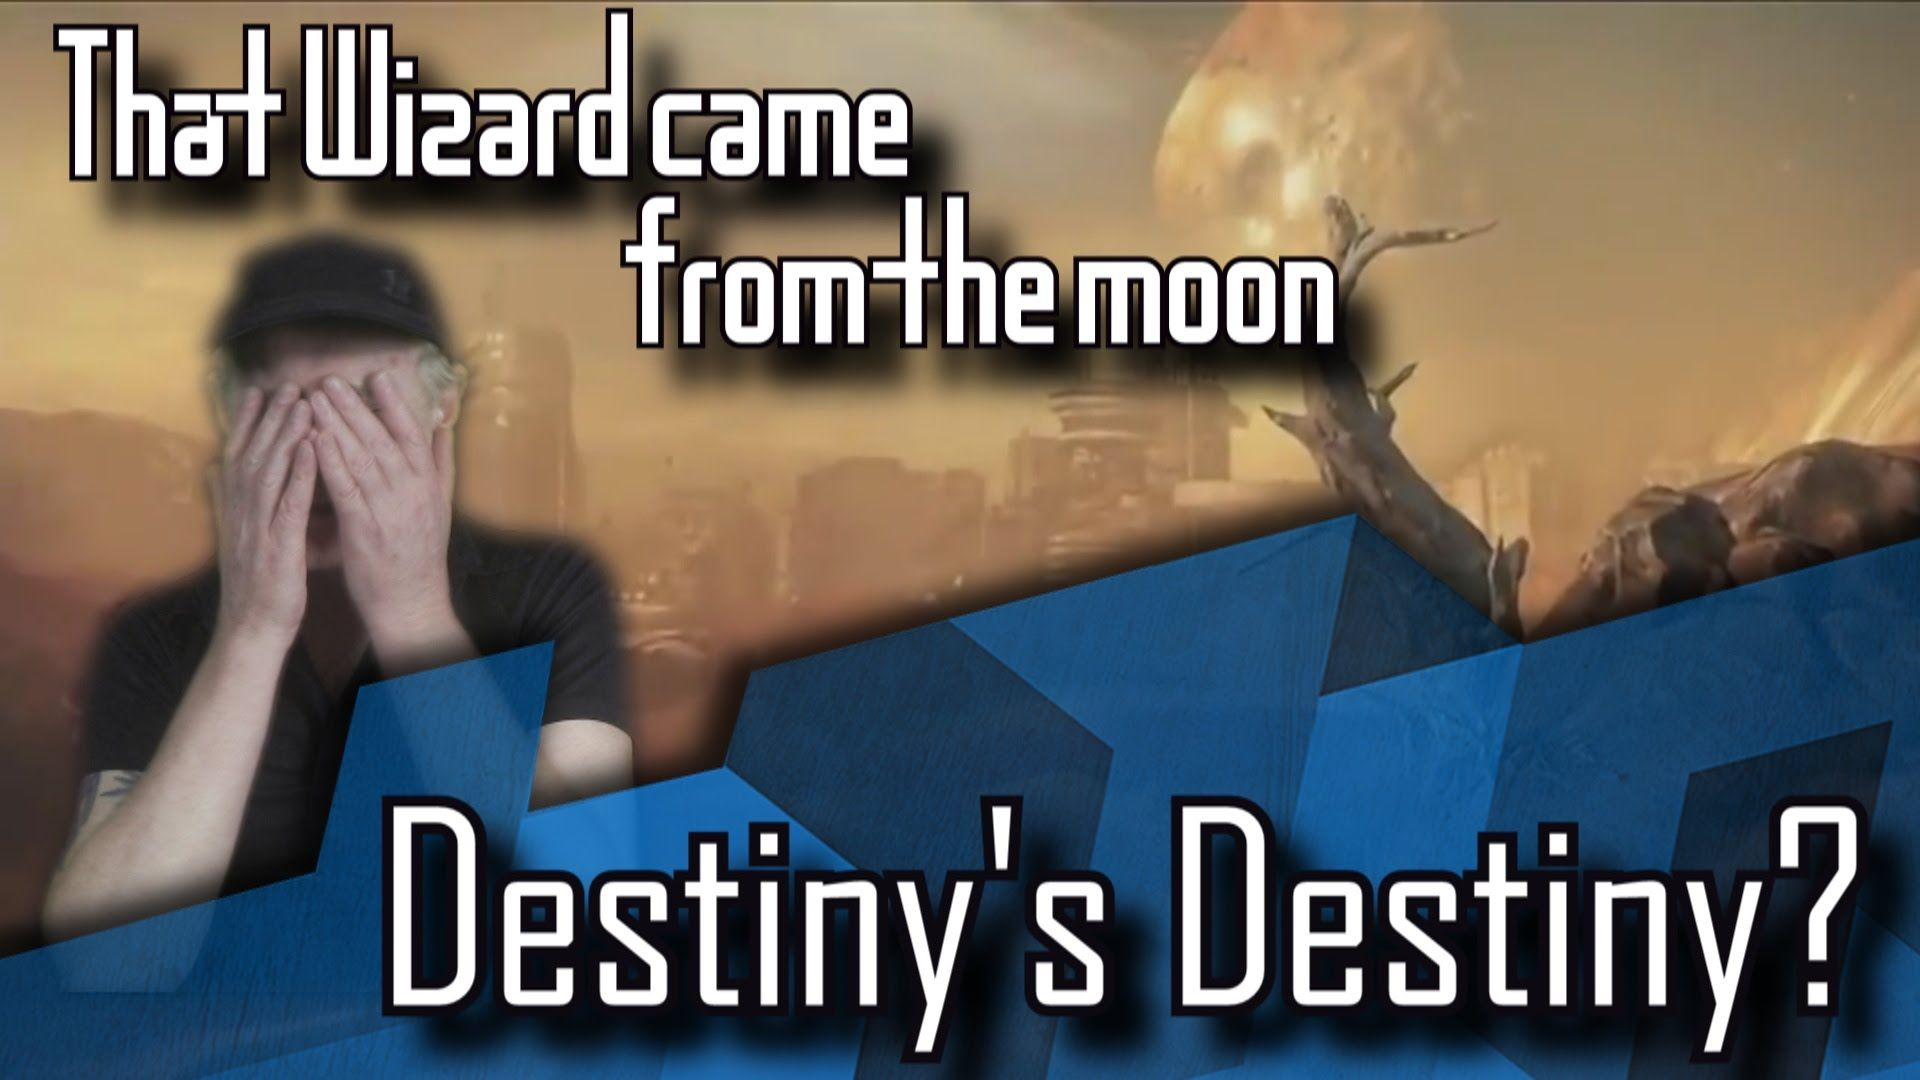 That Wizard Came From The Moon Destiny S Destiny Is That Wizard Came From The Moon Going To Be Destiny S Destiny That Feeling Of Being Destiny Wizard Moon